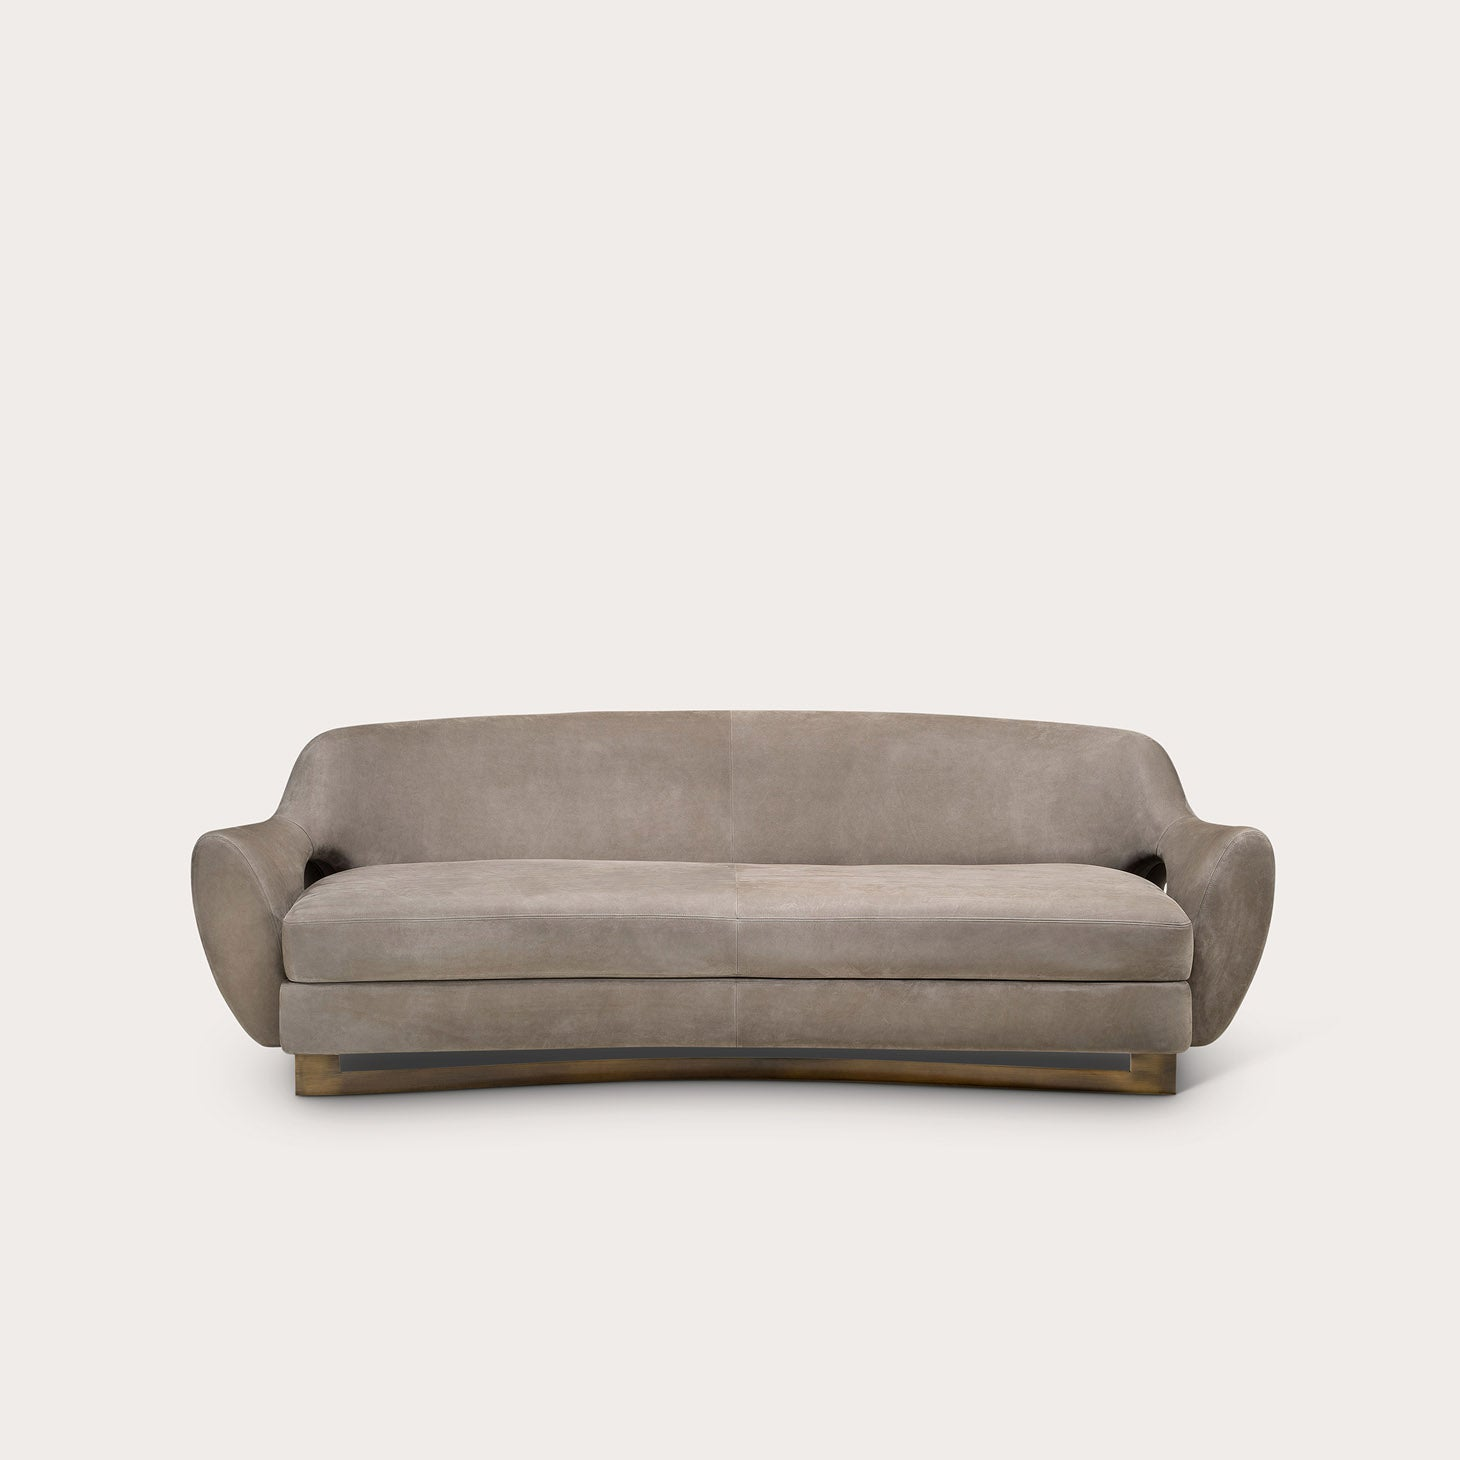 GUMI Sofa Seating Bruno Moinard Designer Furniture Sku: 773-240-10012